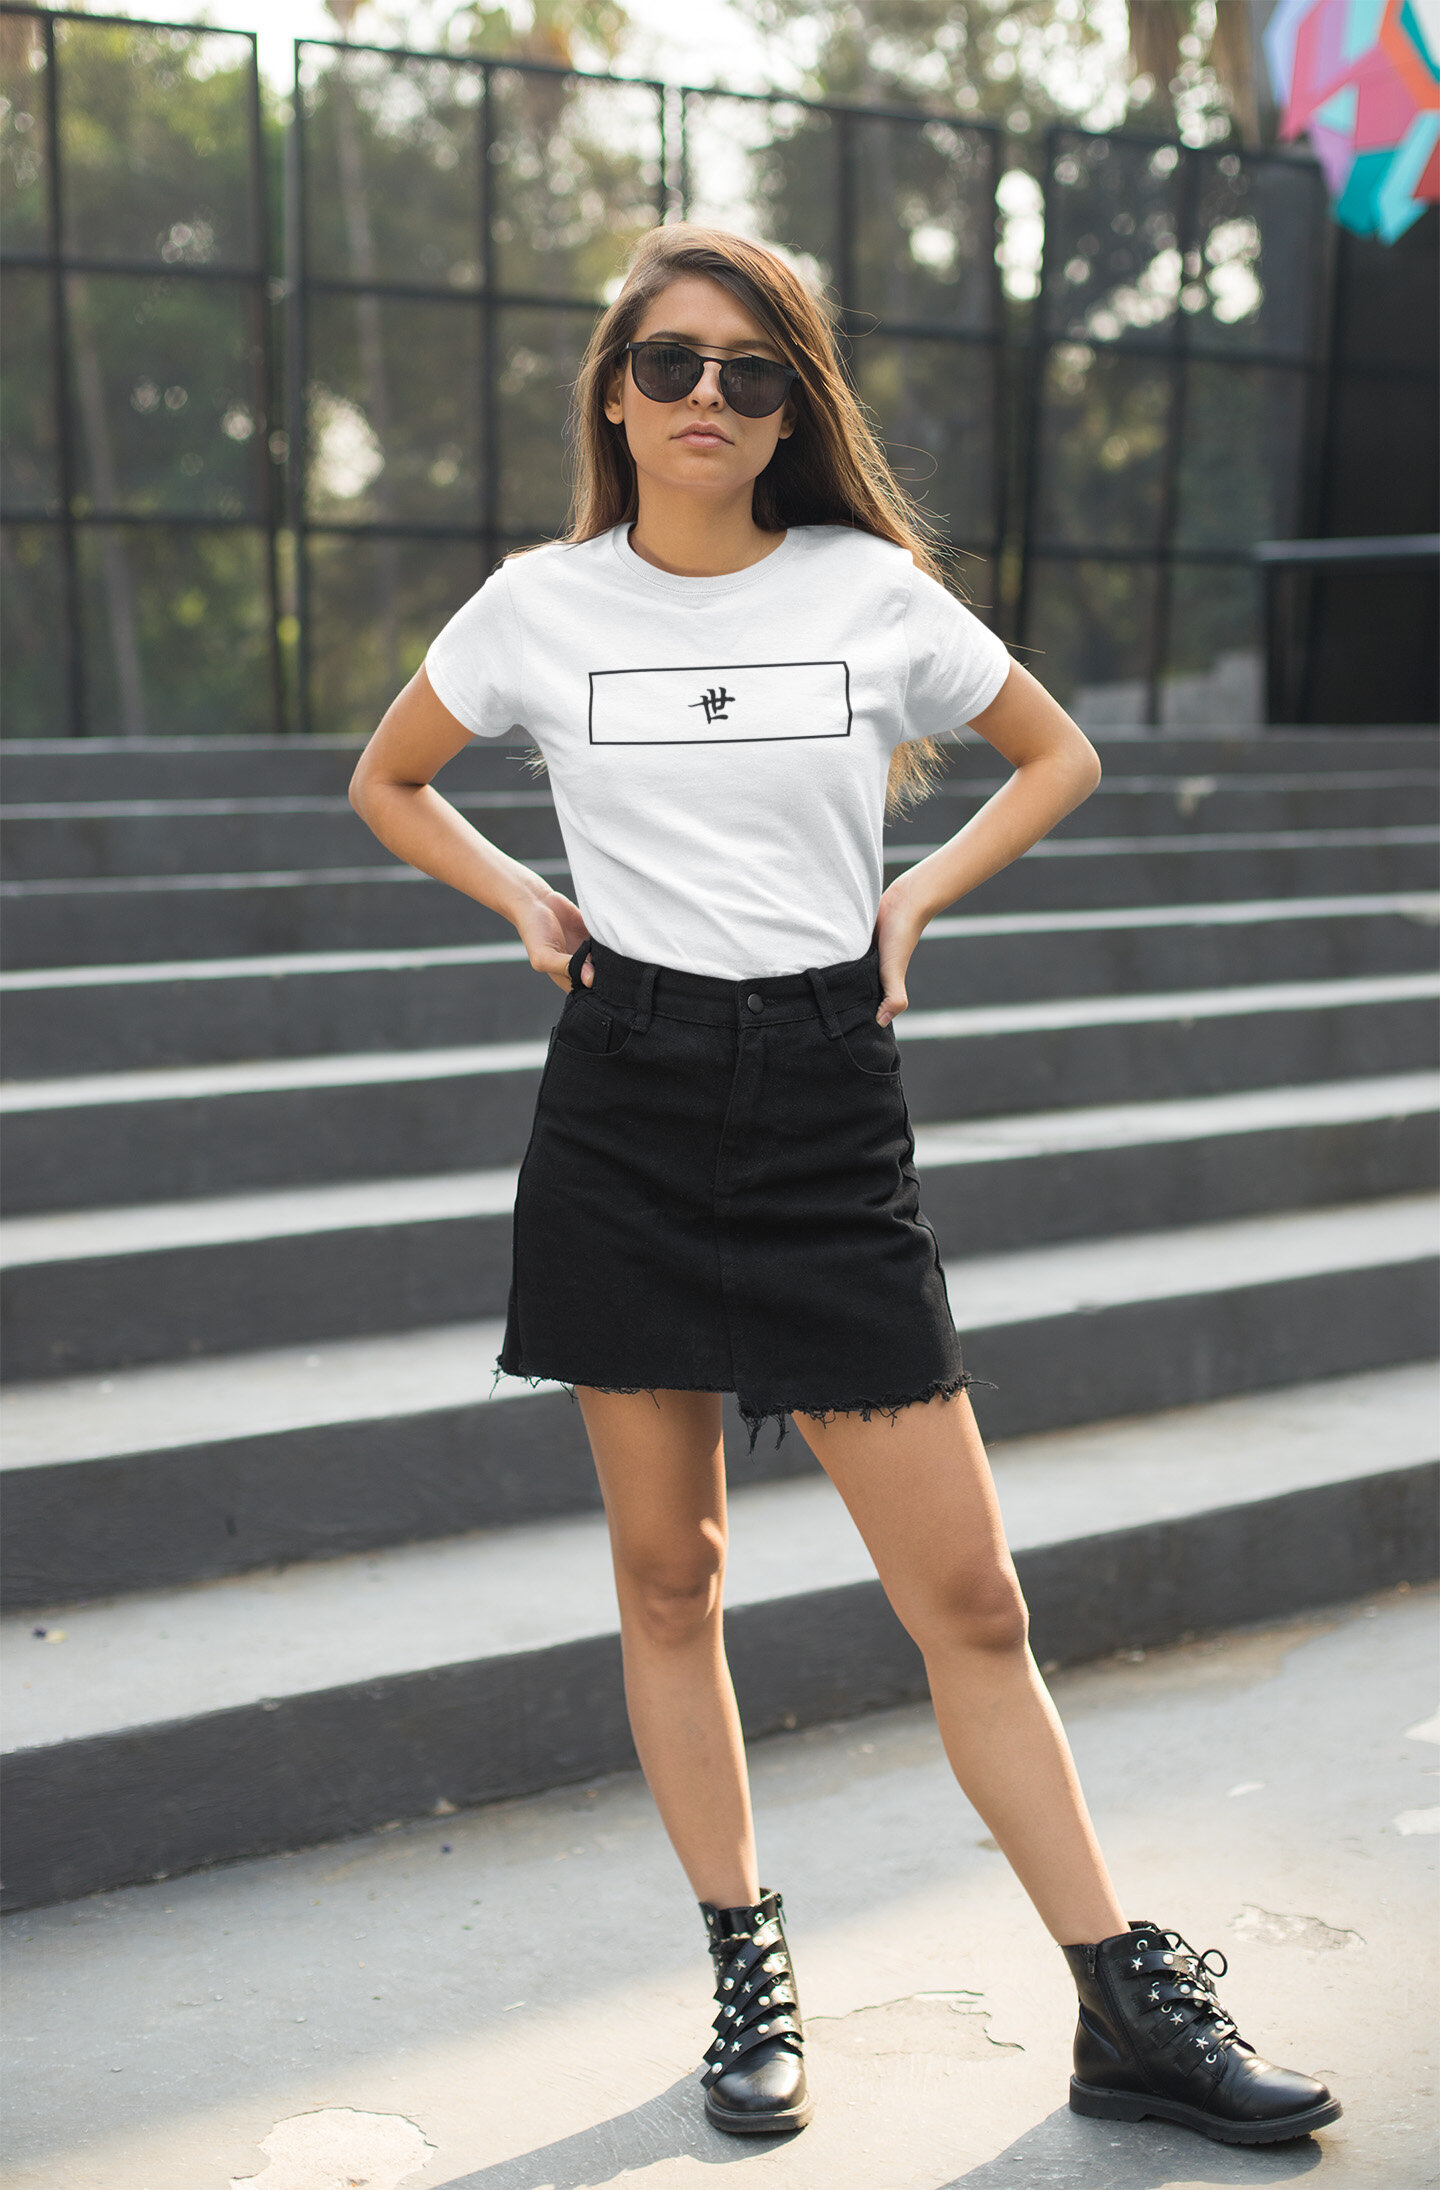 t-shirt-mockup-of-a-woman-with-sunglasses-standing-by-a-set-of-stairs-27329.jpg